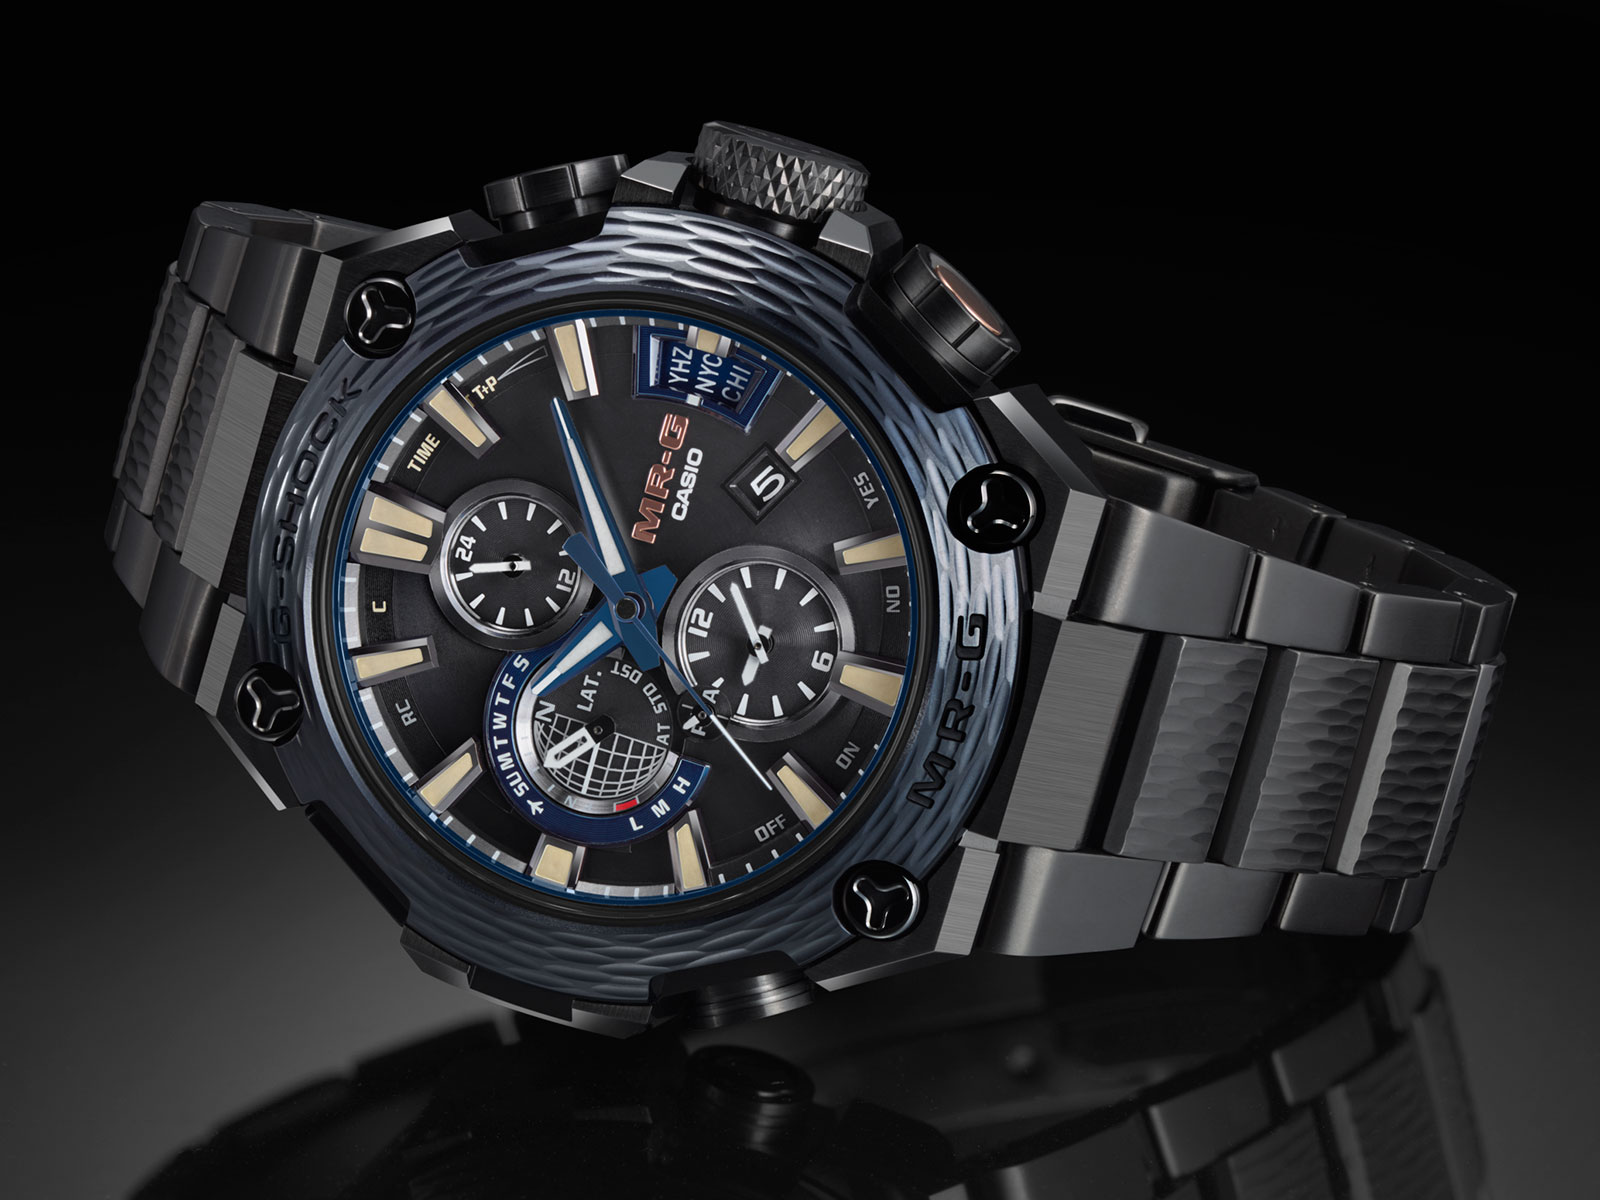 Introducing The G-Shock MR-G: The Future Of Advanced Luxury Timepieces